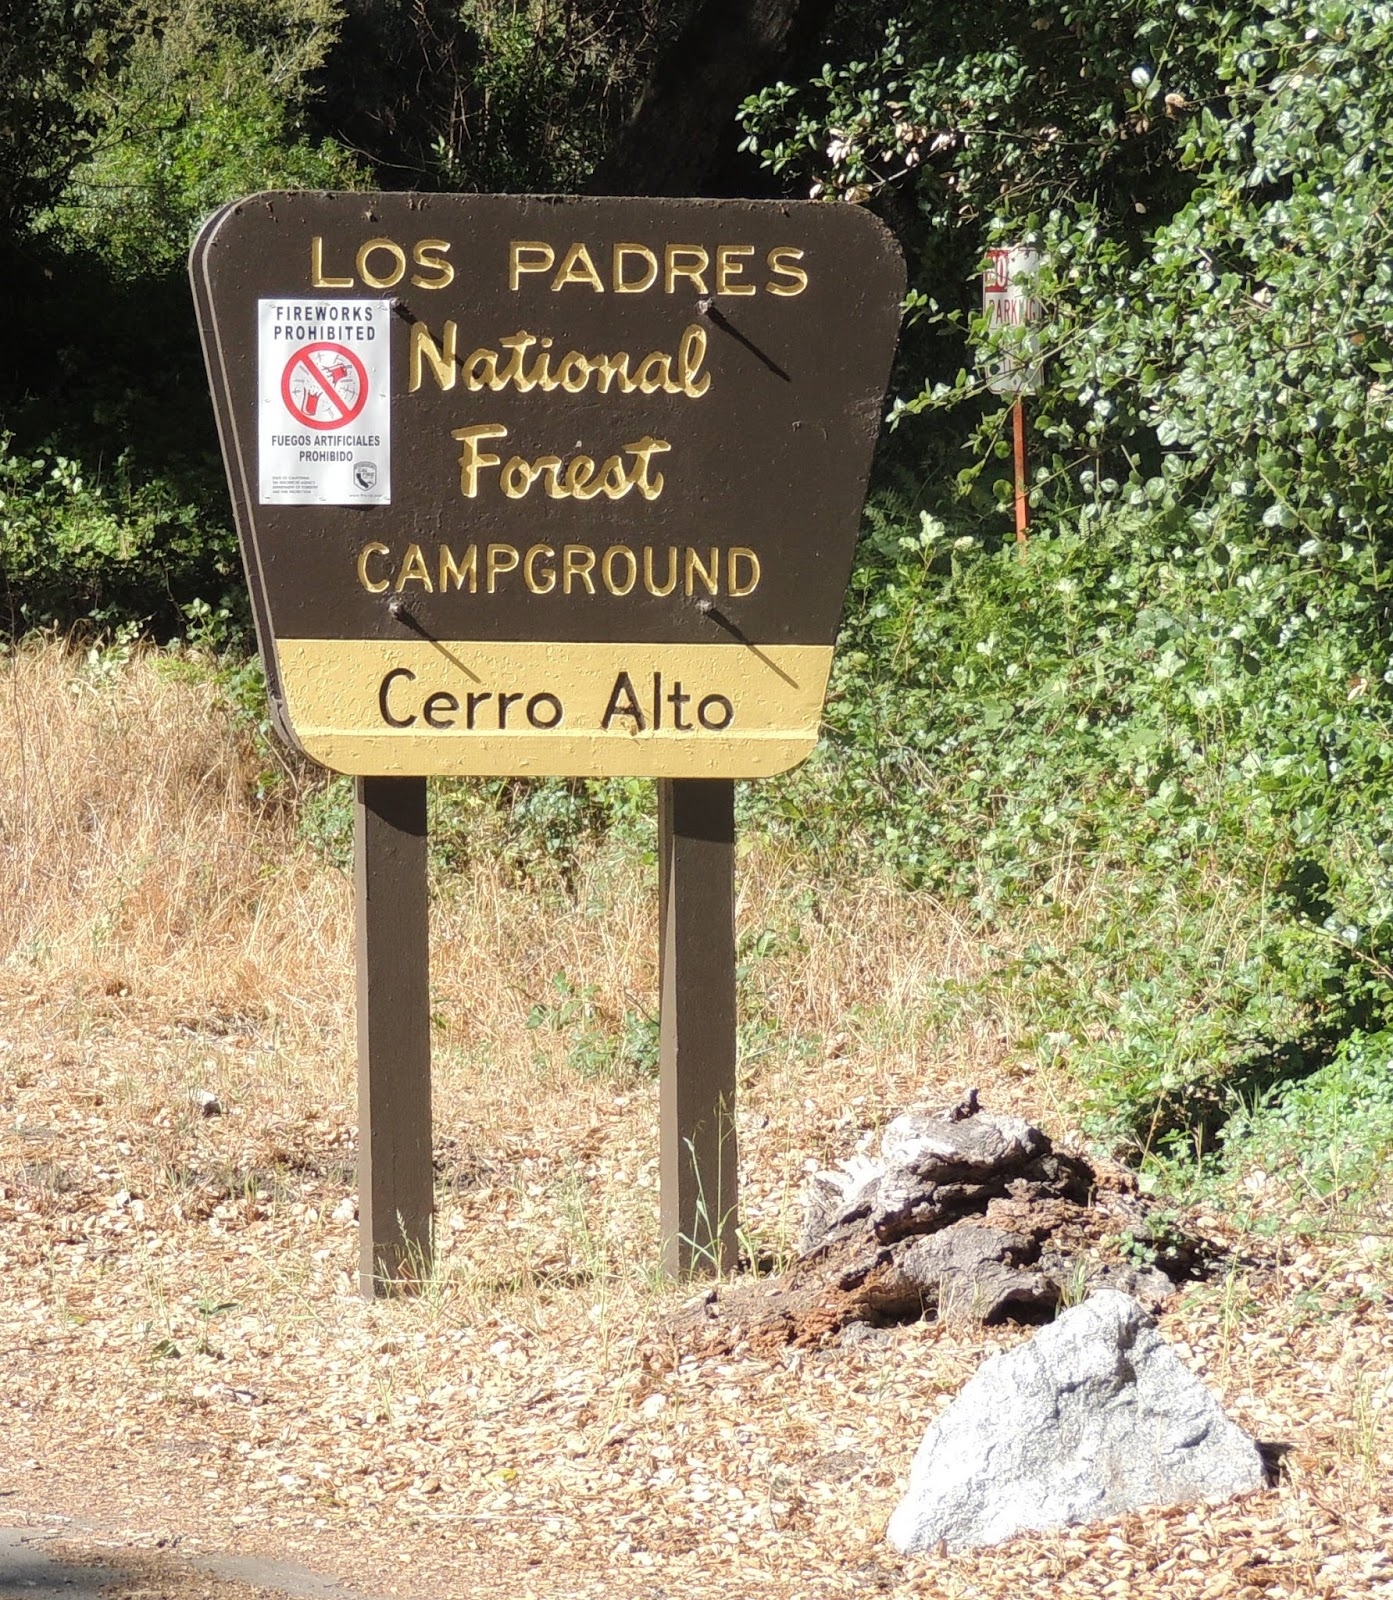 Camping Cabins National Forest Nm: 1000 Hikes In 1000 Days: Day 943: Cerro Alto Campground